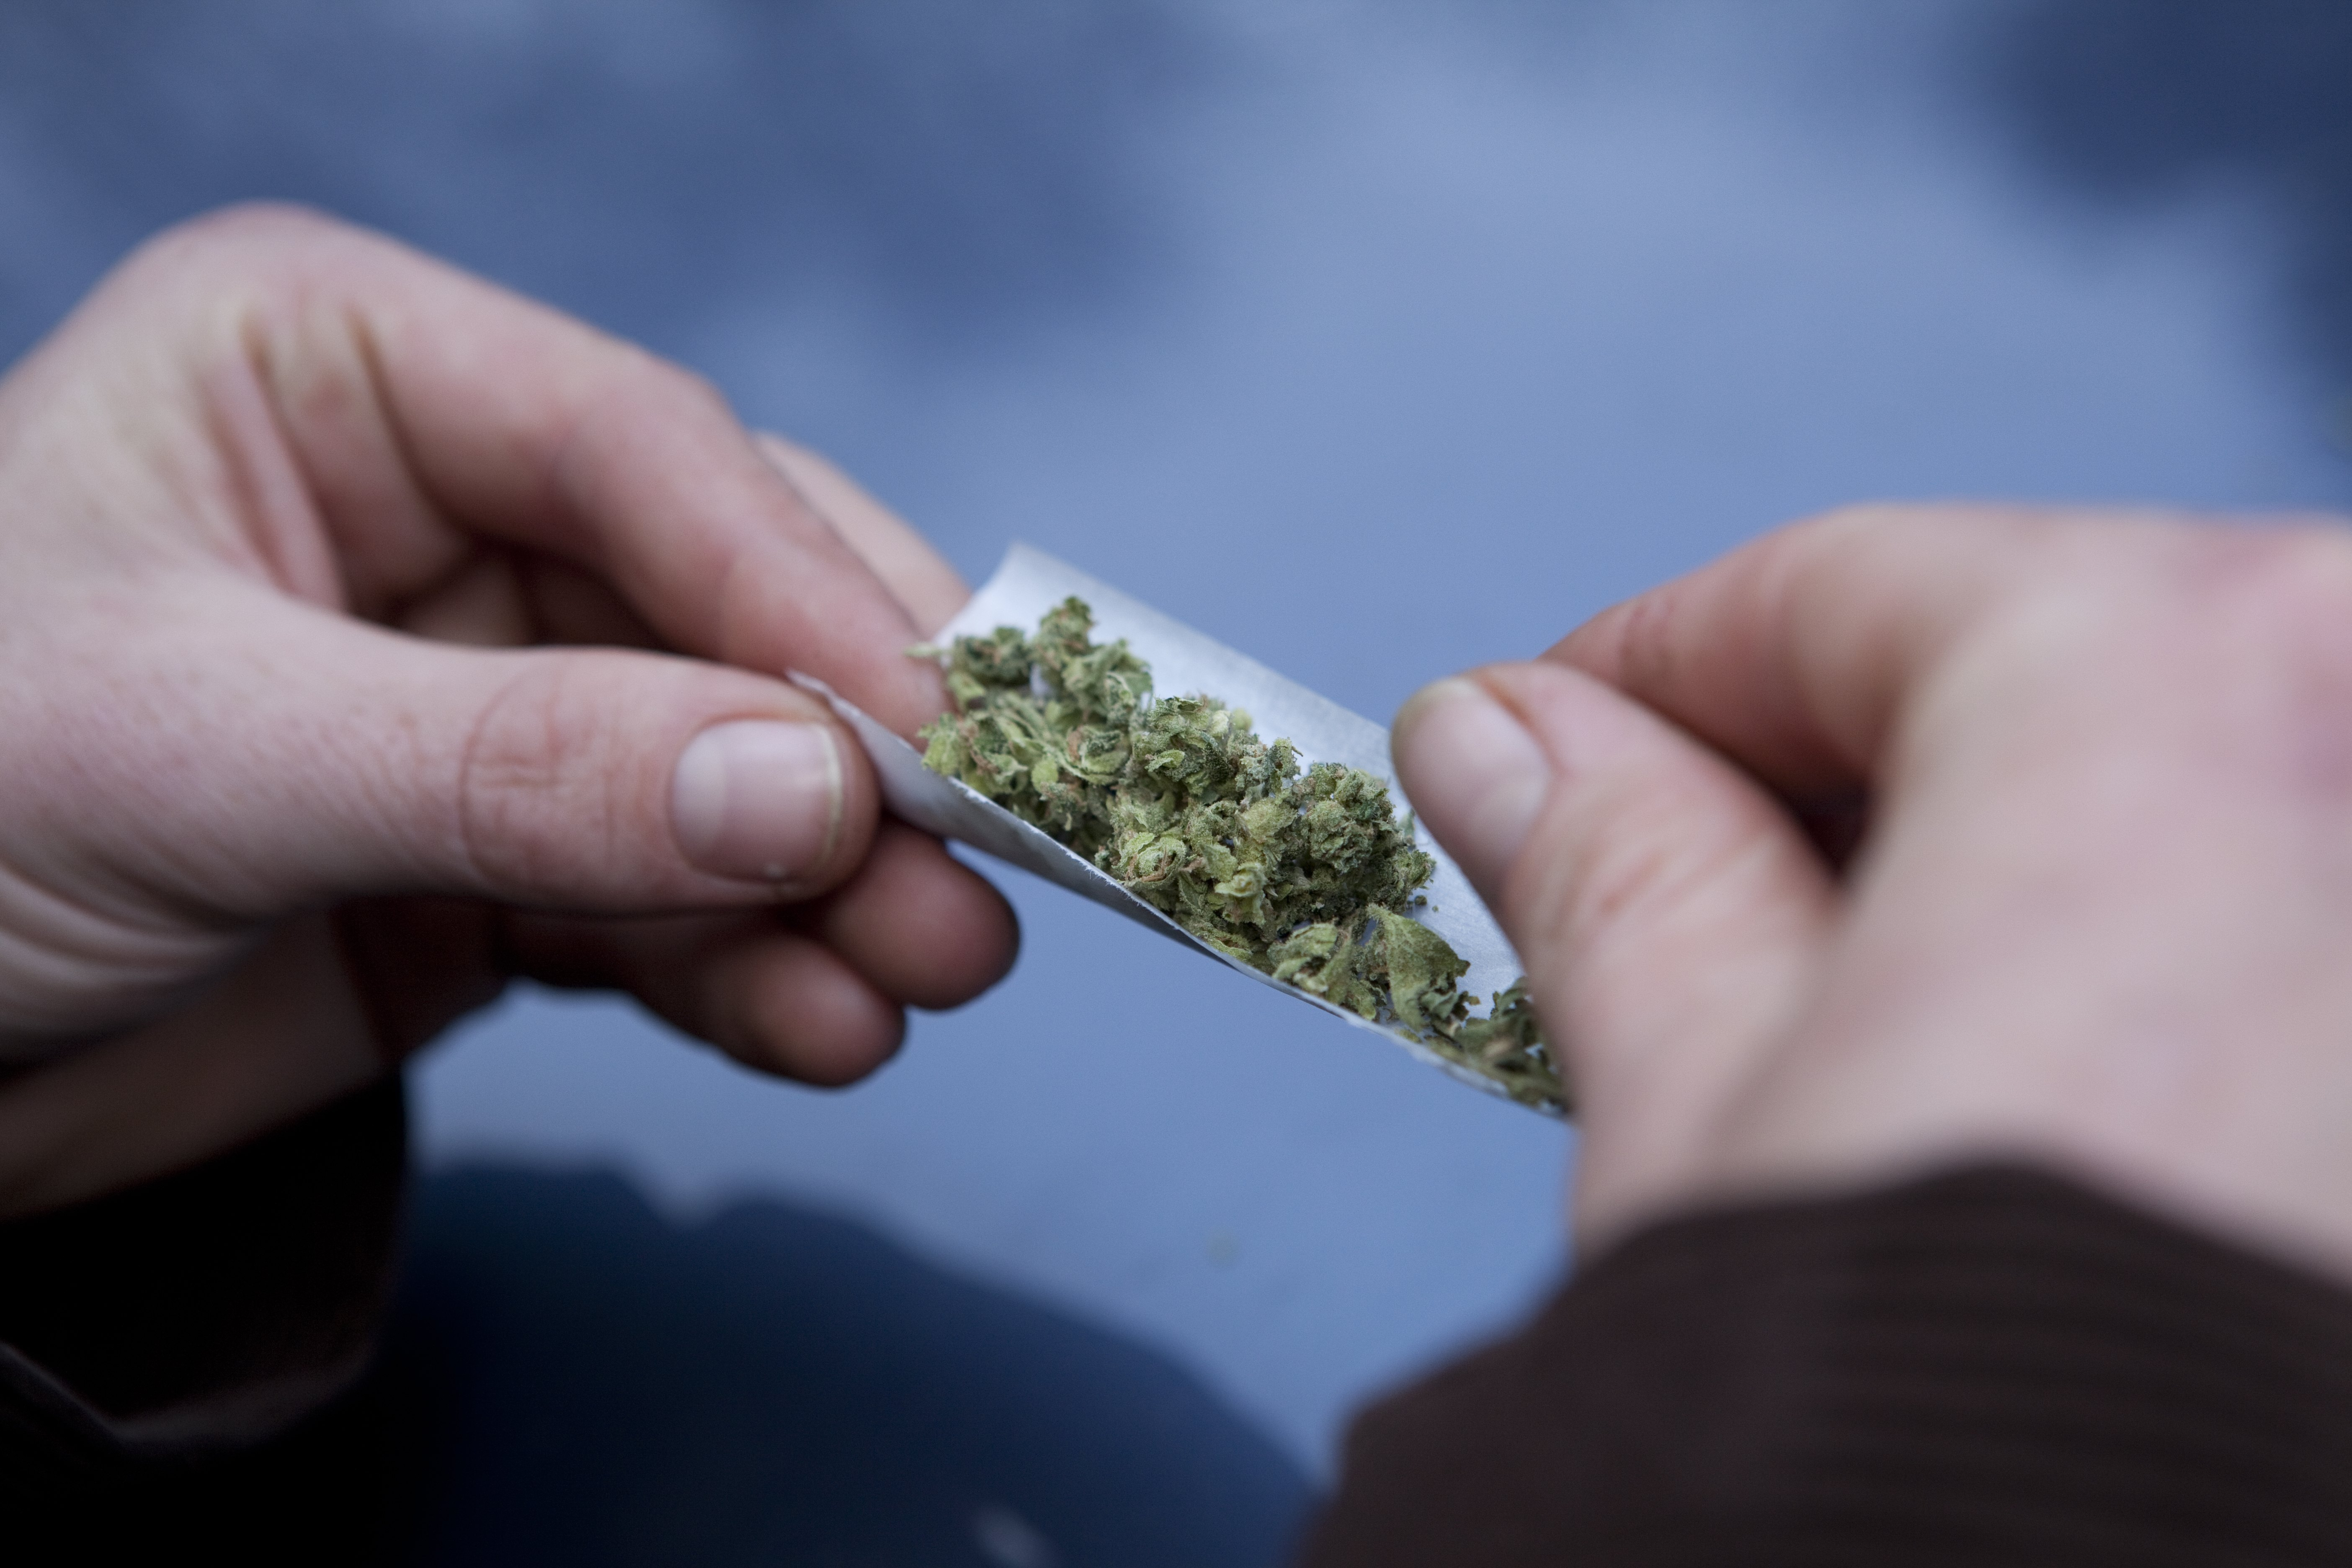 Fewer Americans perceive daily marijuana use as harmful, possibly due to a push in legalization.